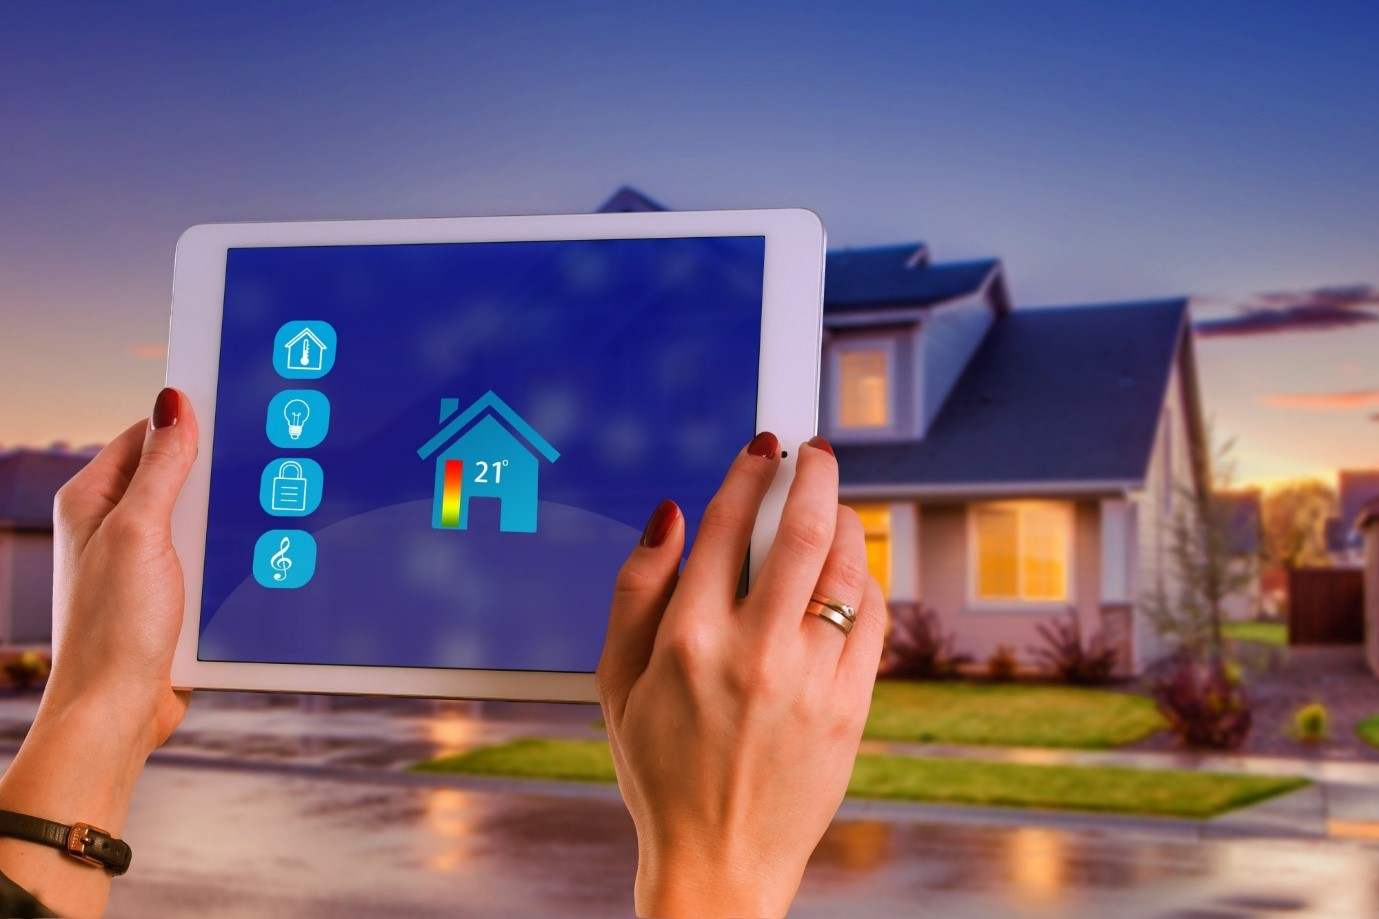 image - 5 Smart Home Benefits You'll Absolutely Fall in Love With